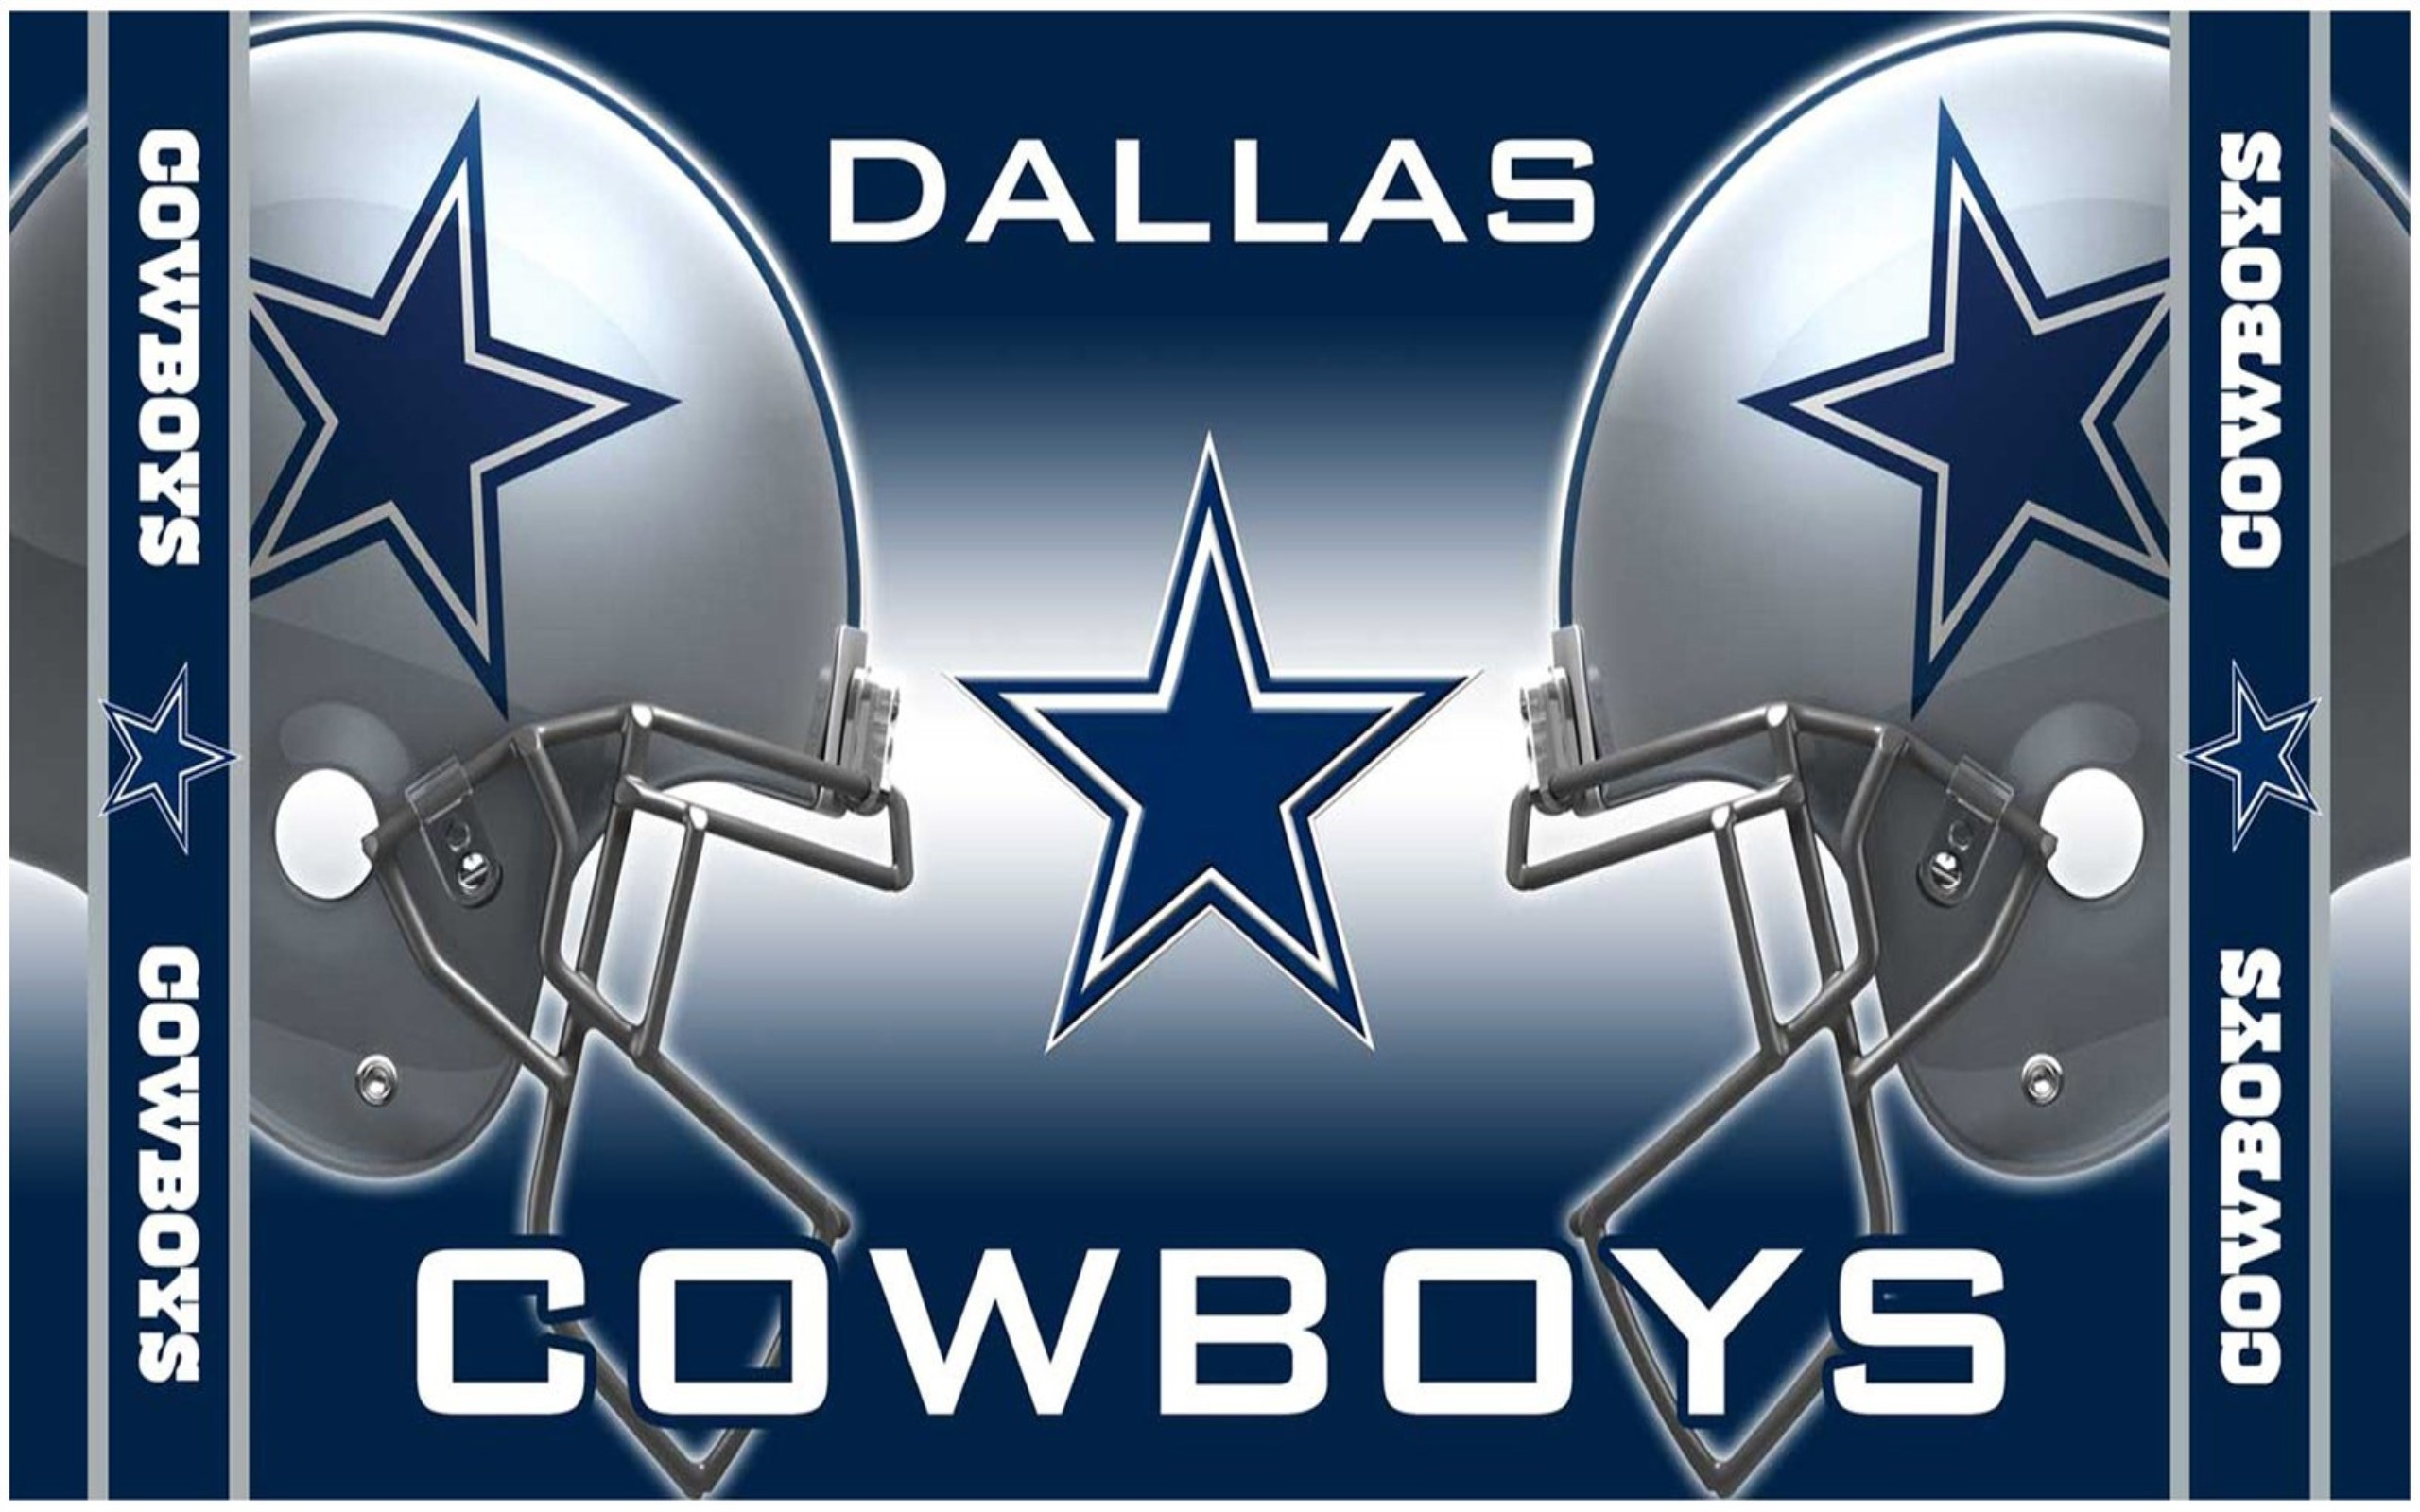 Dallas Cowboys Schedule 2014 Printable PDF Dallas Cowboys Schedule 2560x1600